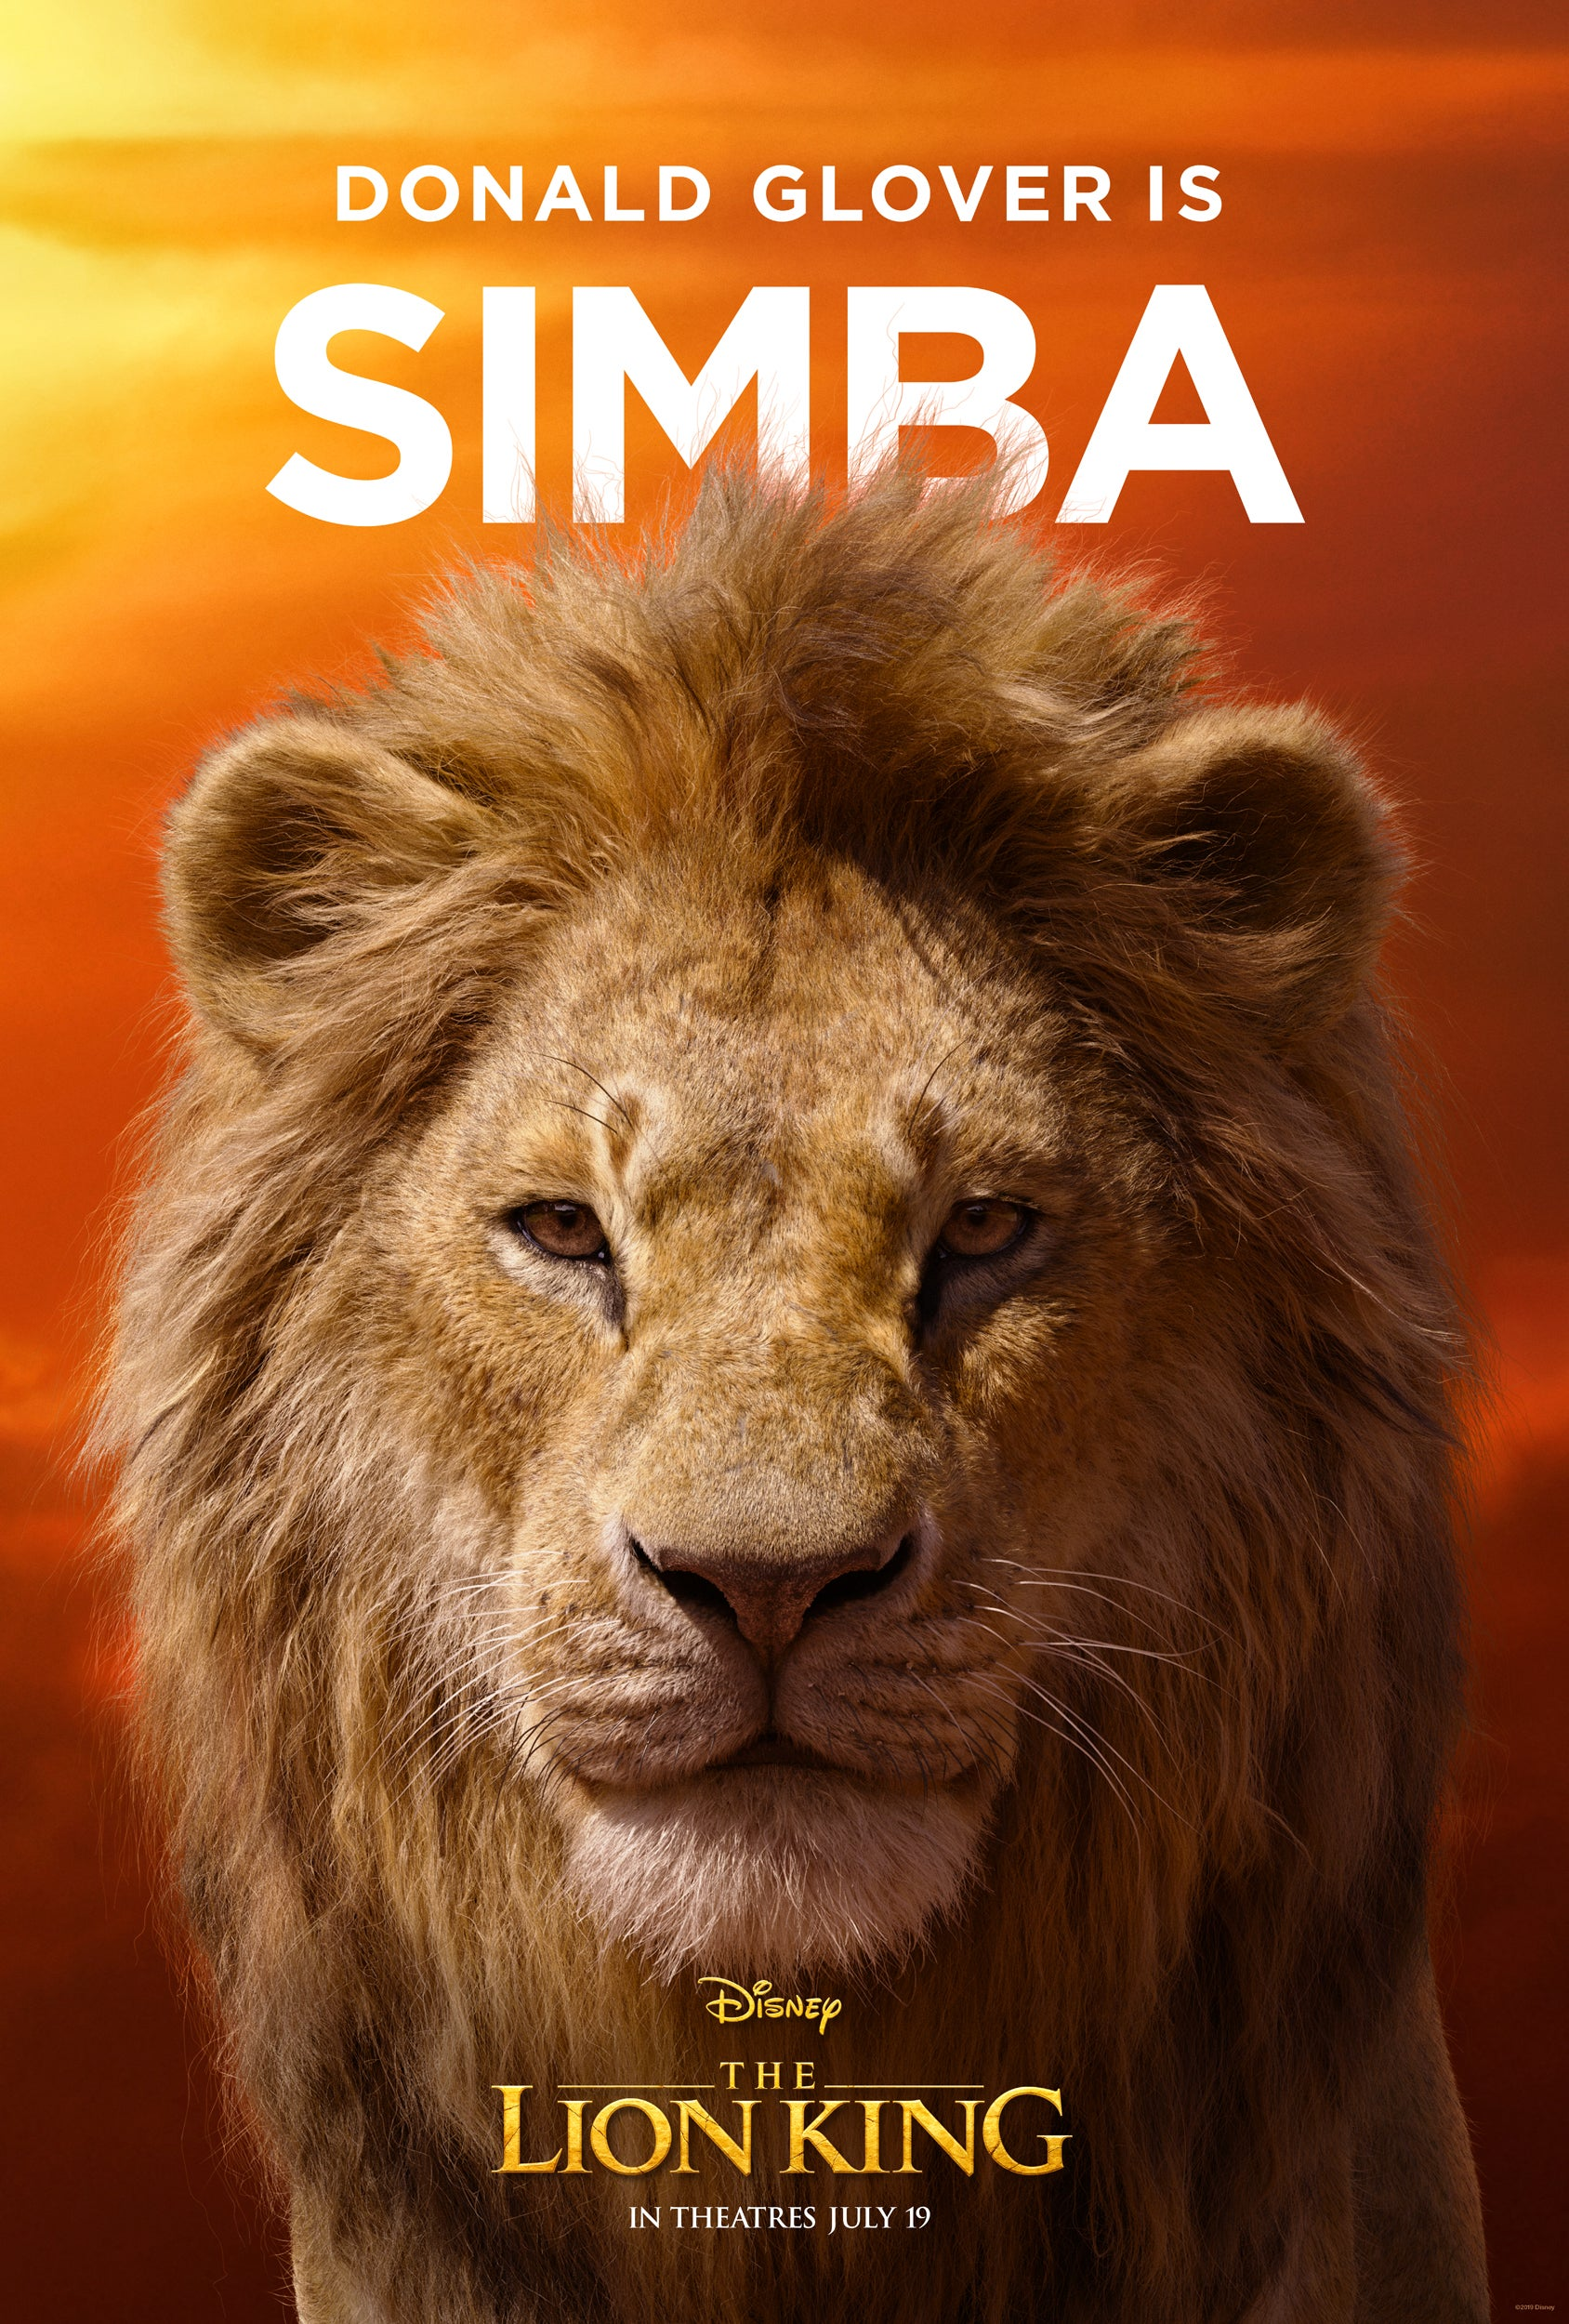 The Lion King Posters Provide A New Look At Donald Glover S Simba Beyonce S Nala And More Entertainment Tonight